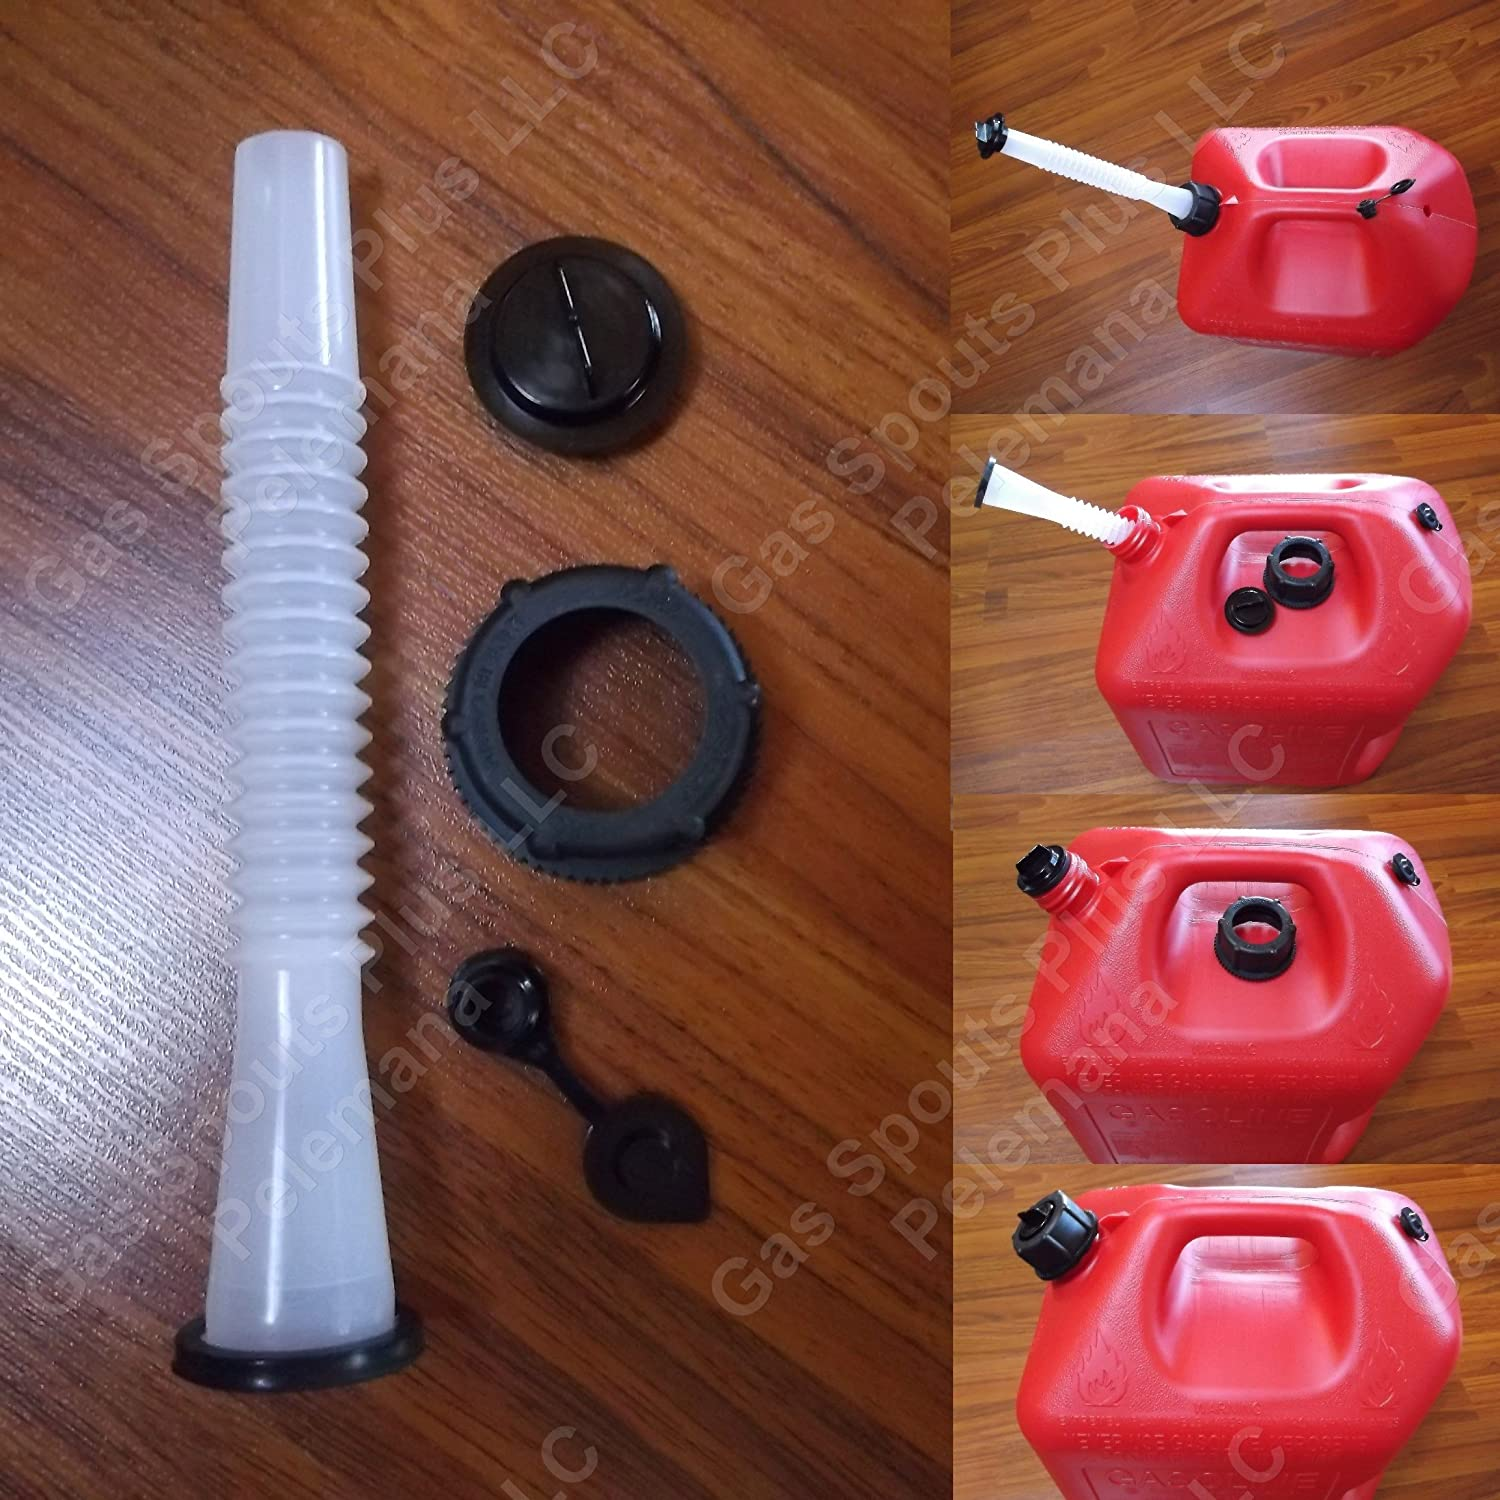 5 Sets Of Gas Can Fuel Spout Cap Kit Replacement Industrial Q6Y9 Parts N8B3